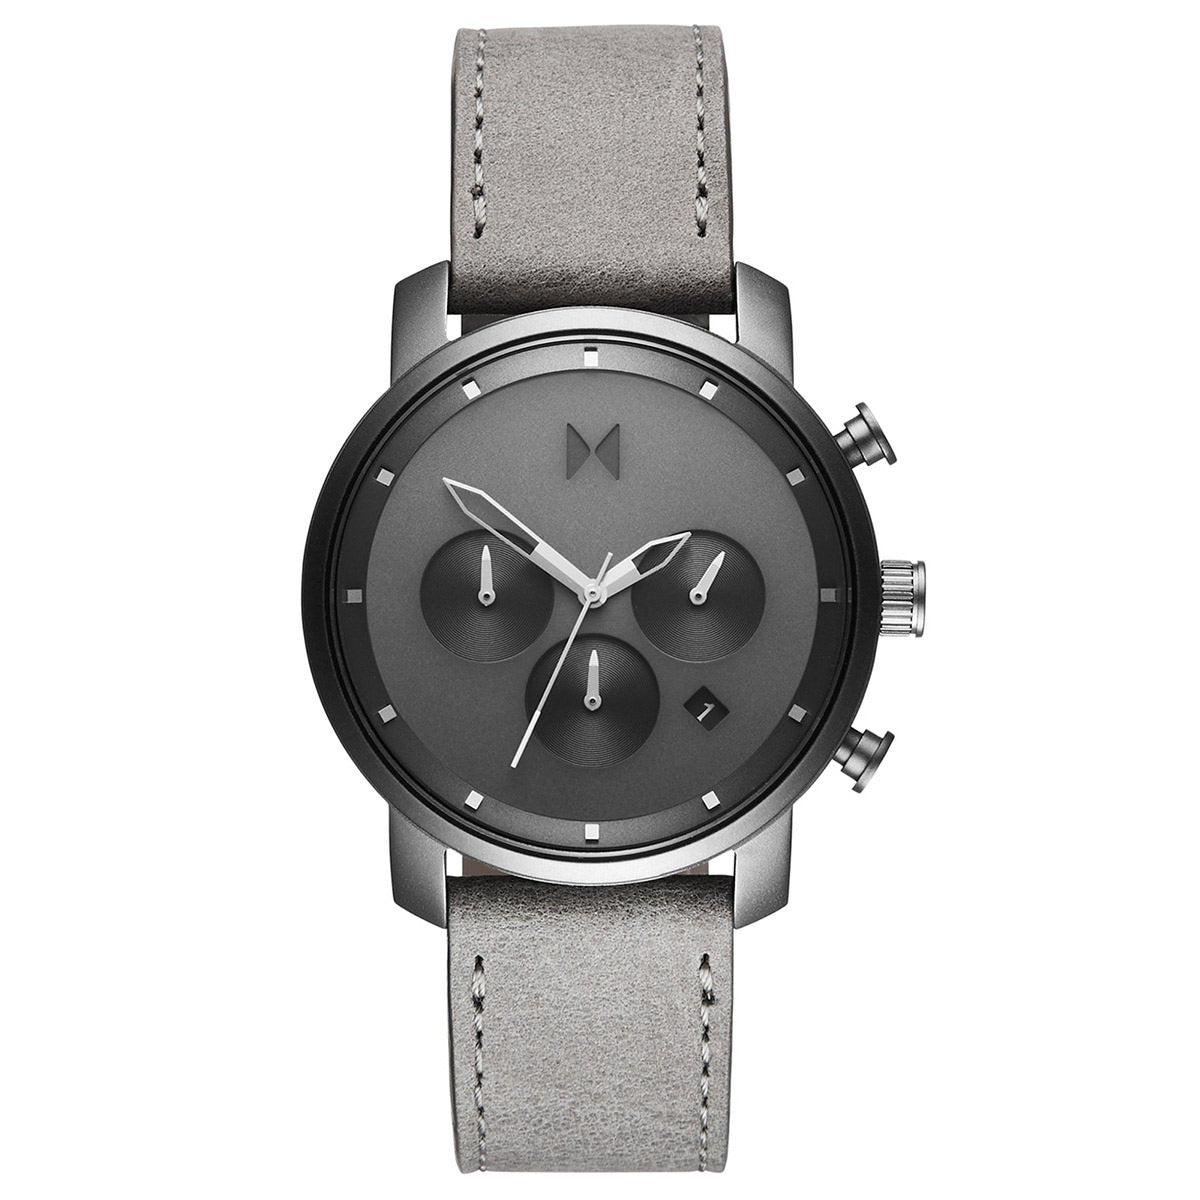 MVMT Men's Watch MVD-MC01-BBLGR